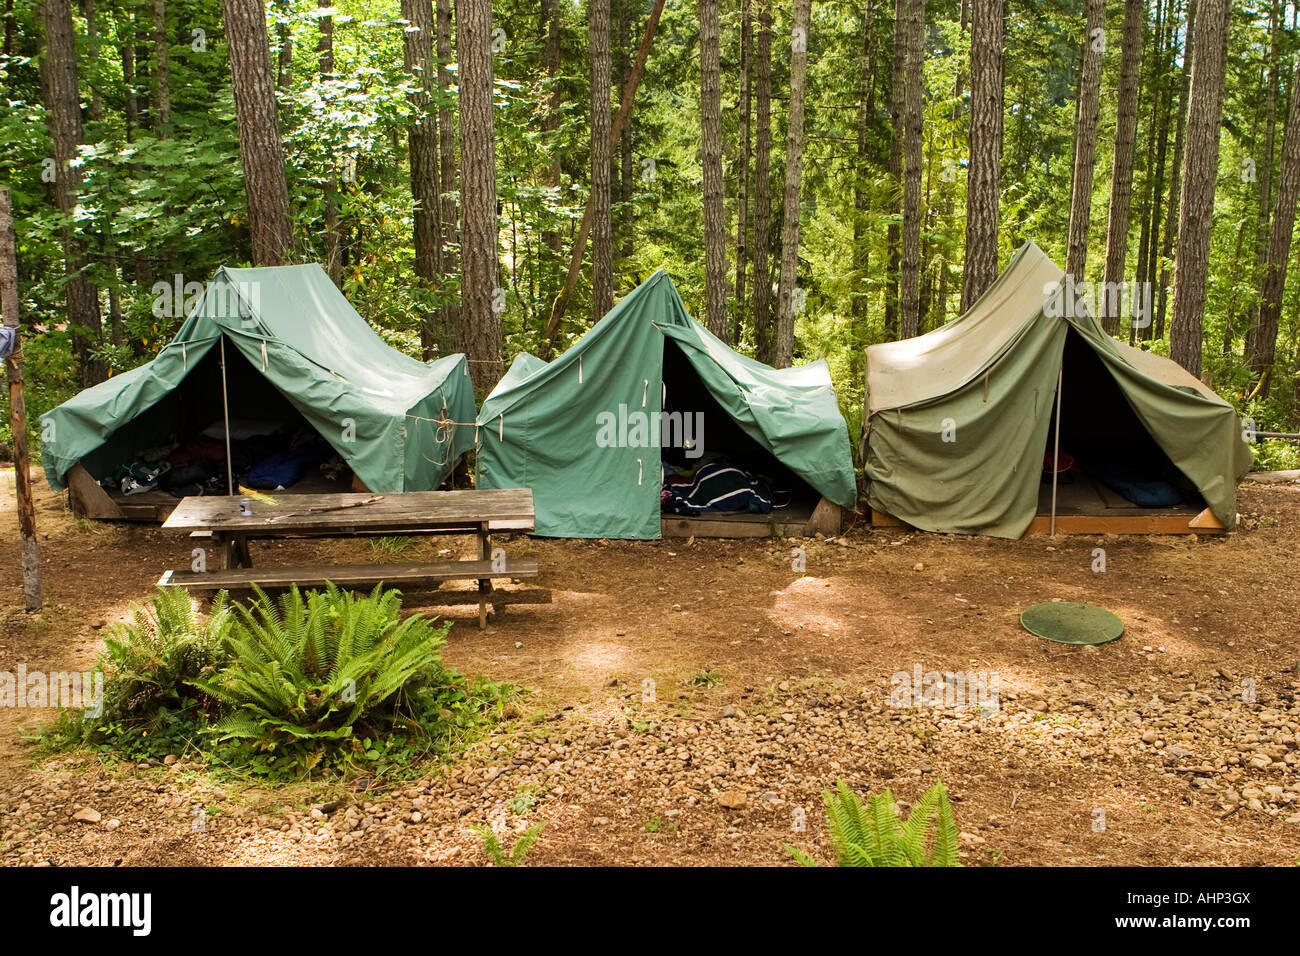 Tents At Boy Scout C& & Tents At Boy Scout Camp Stock Photo Royalty Free Image: 14520889 ...